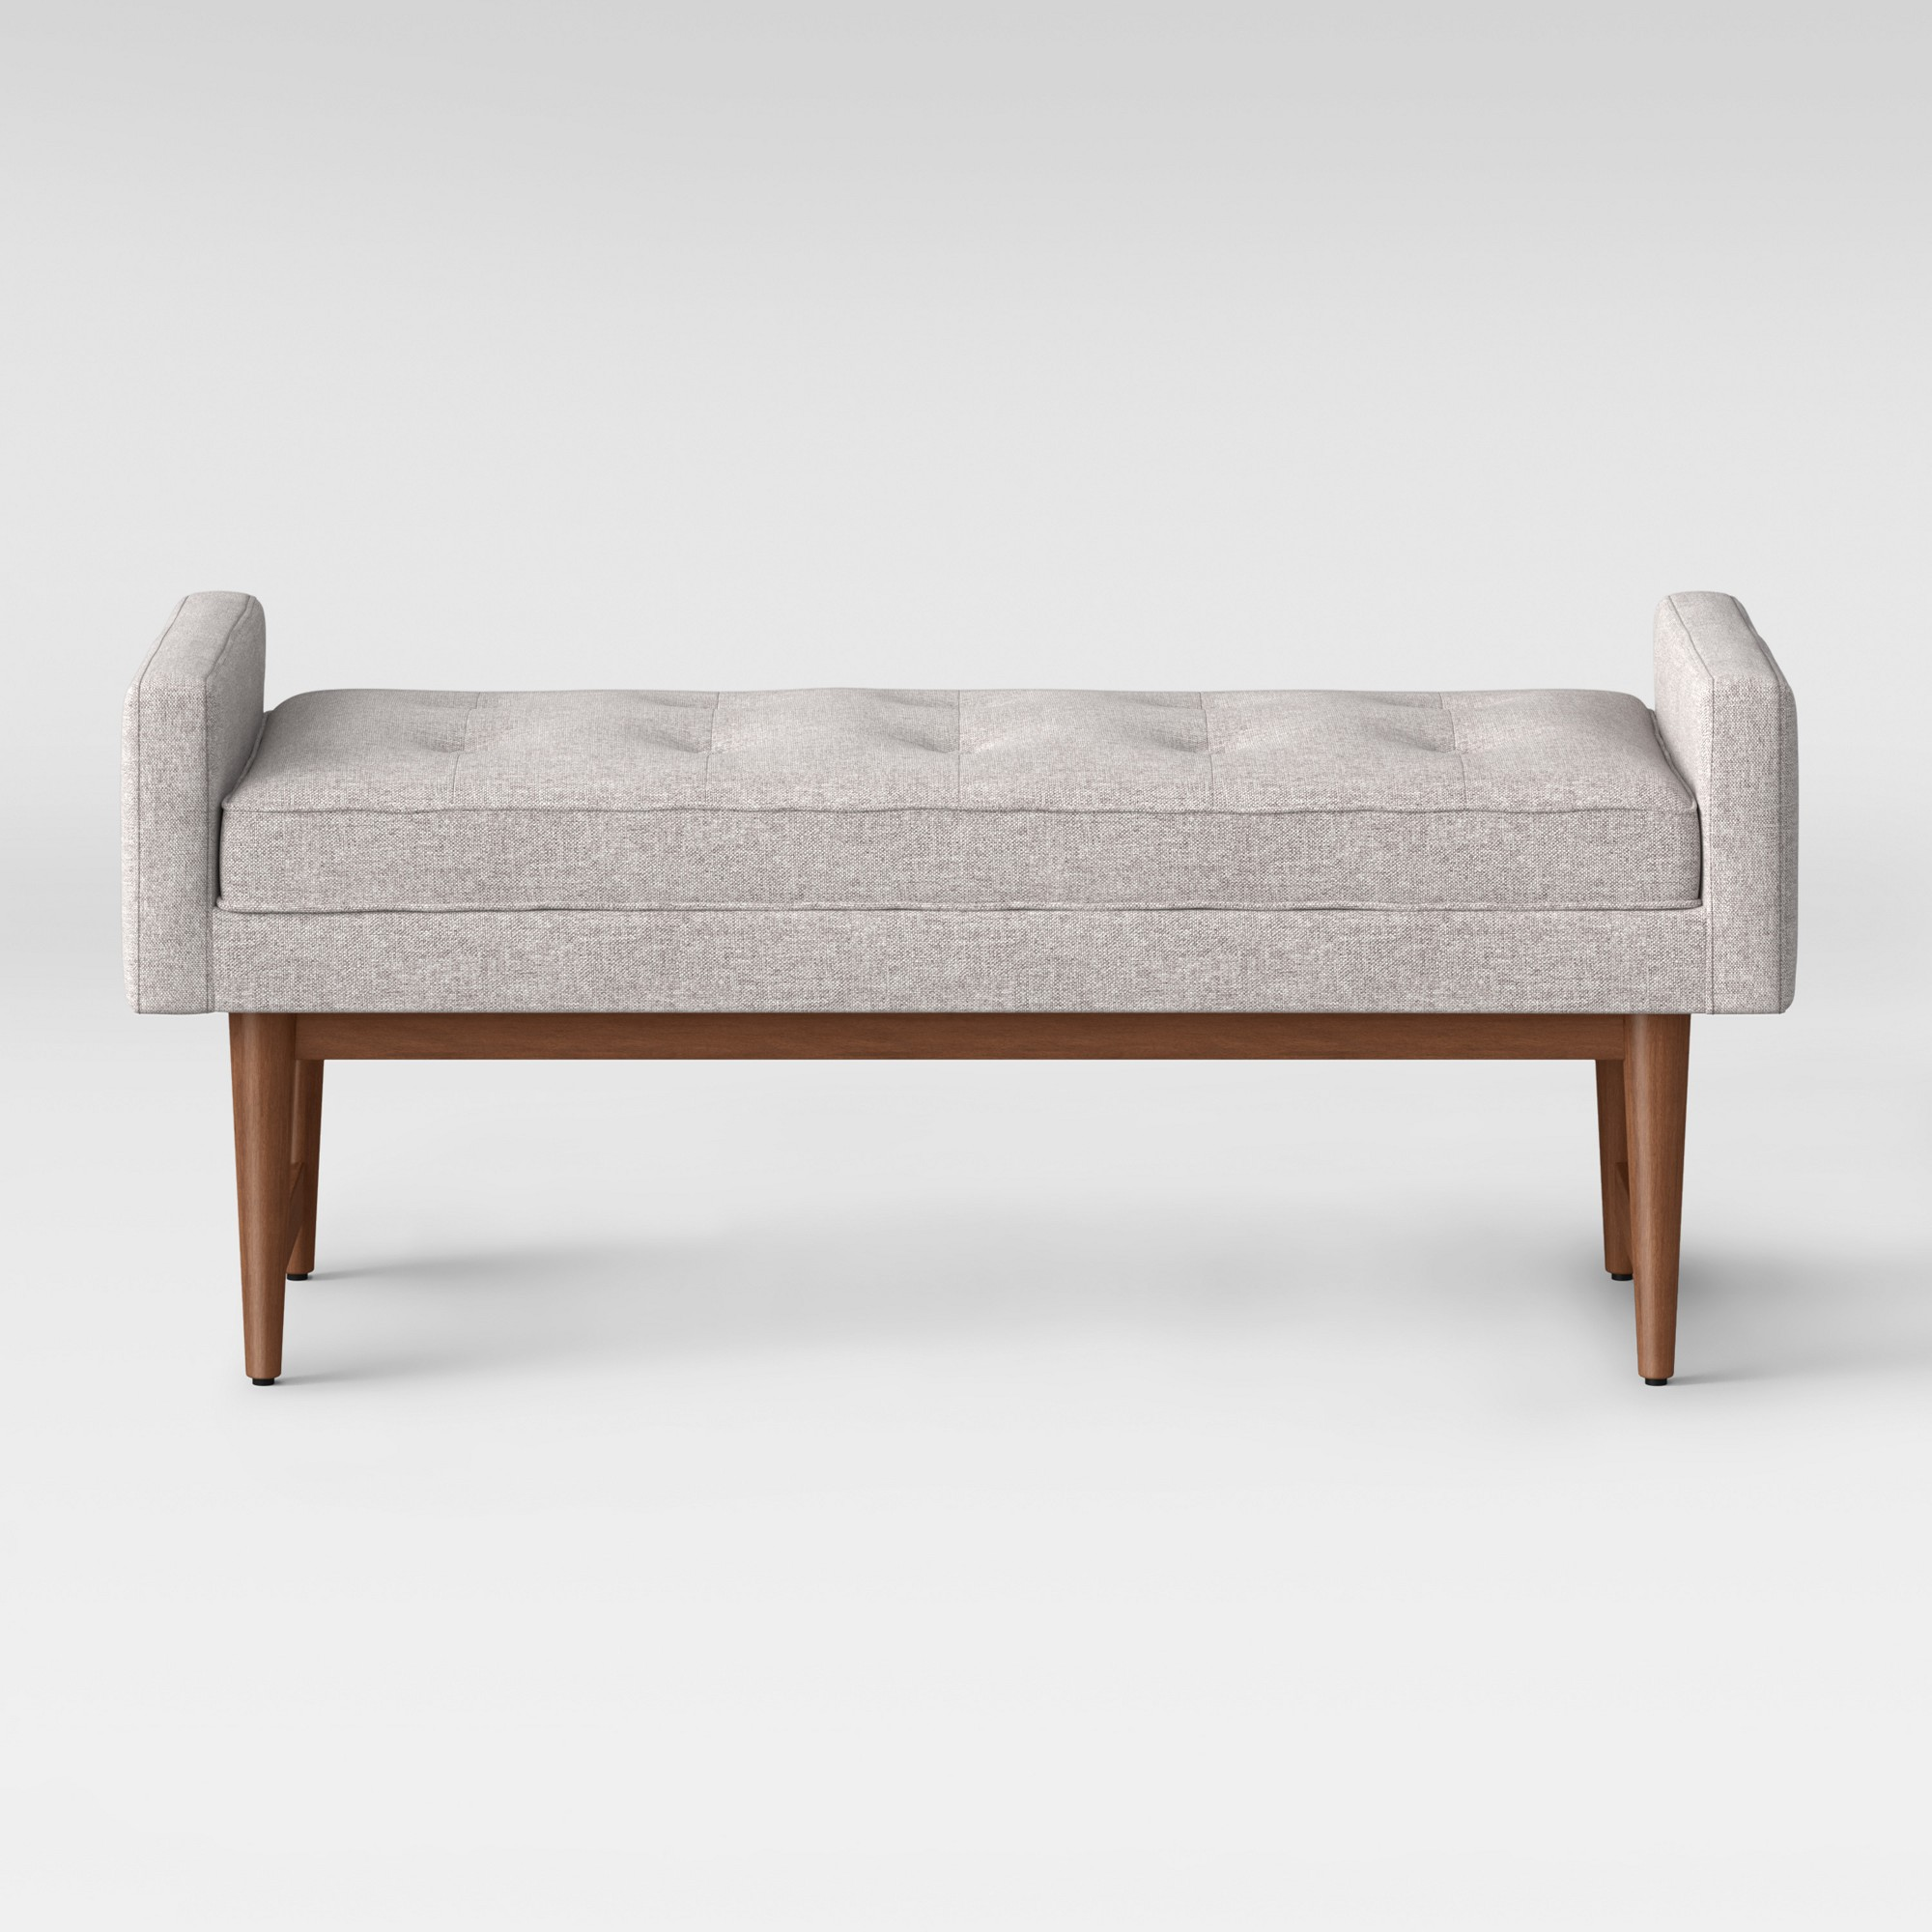 living room settee benches no area rug in verken bench gray project 62 products